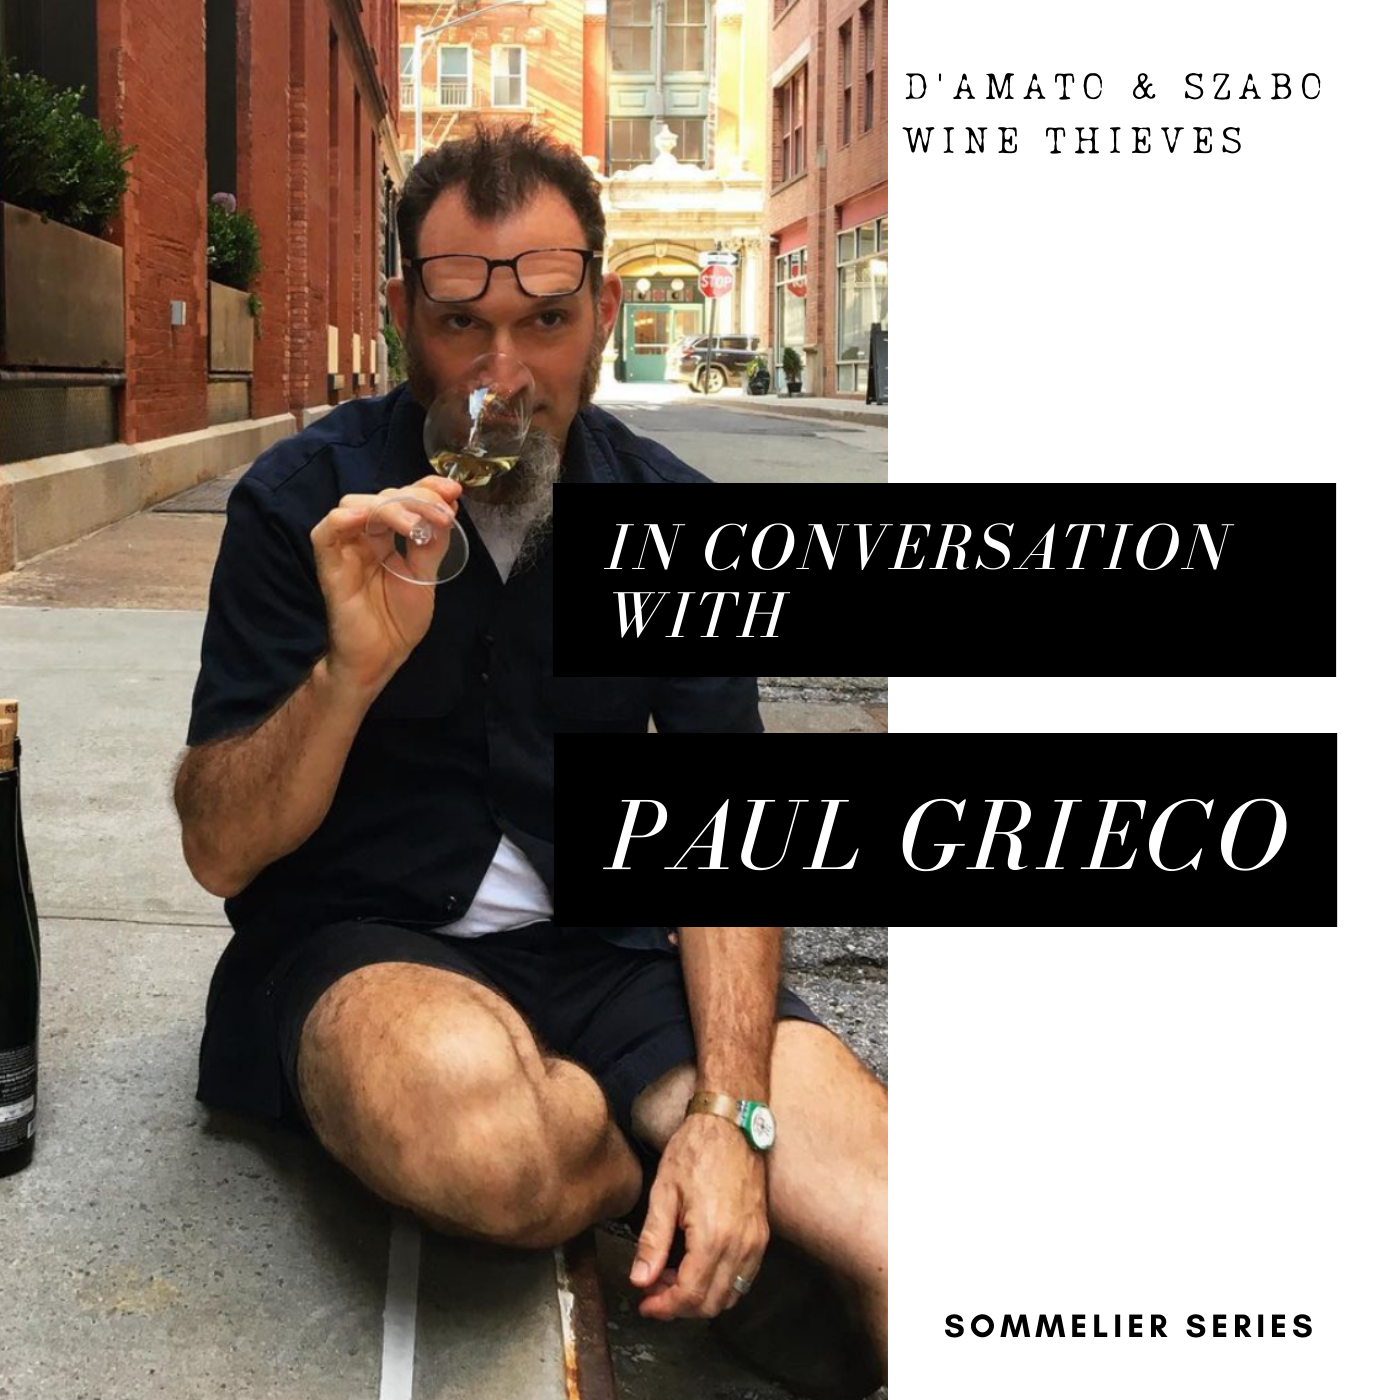 in conversation with Paul Grieco